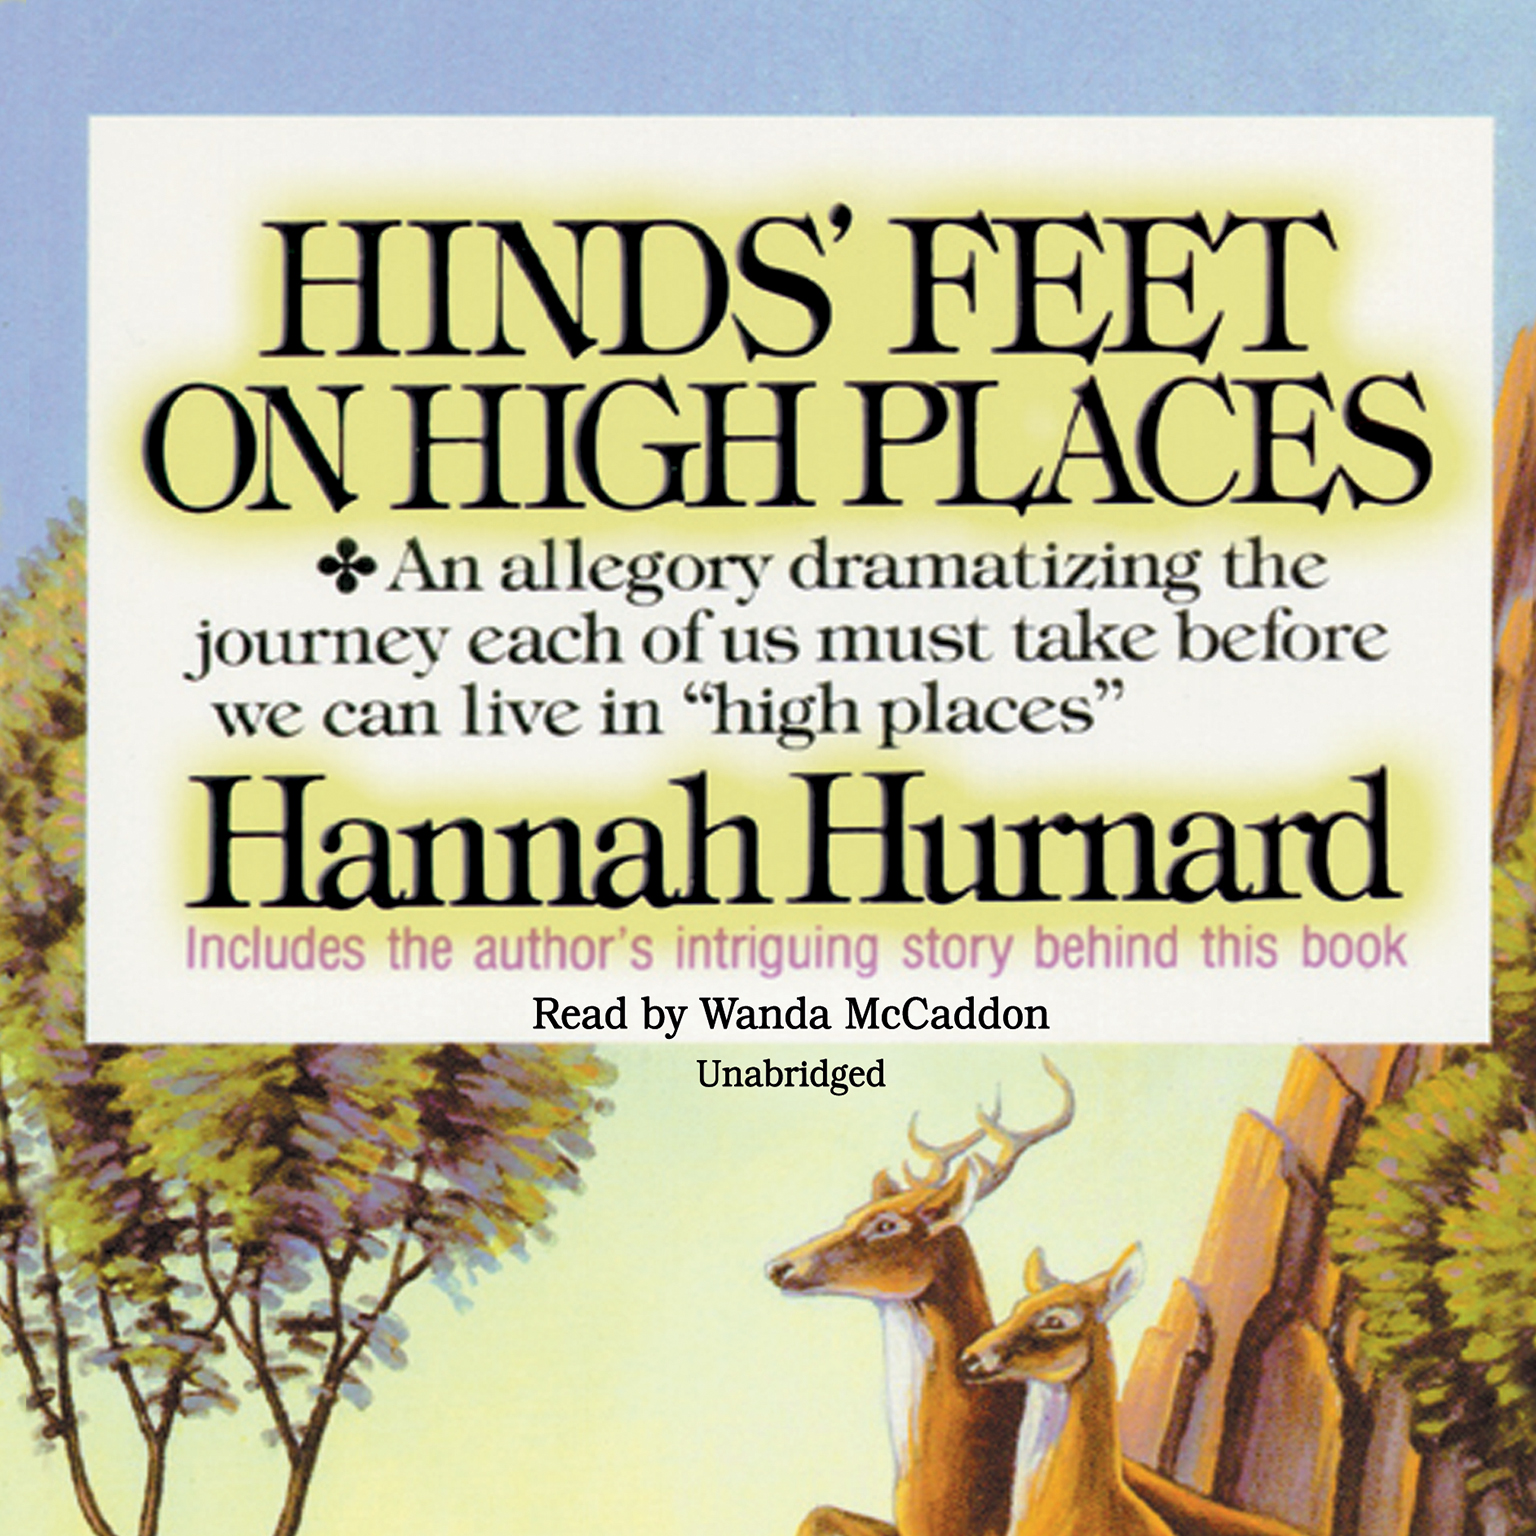 Hinds' Feet on High Places Audiobook, by Hannah Hurnard